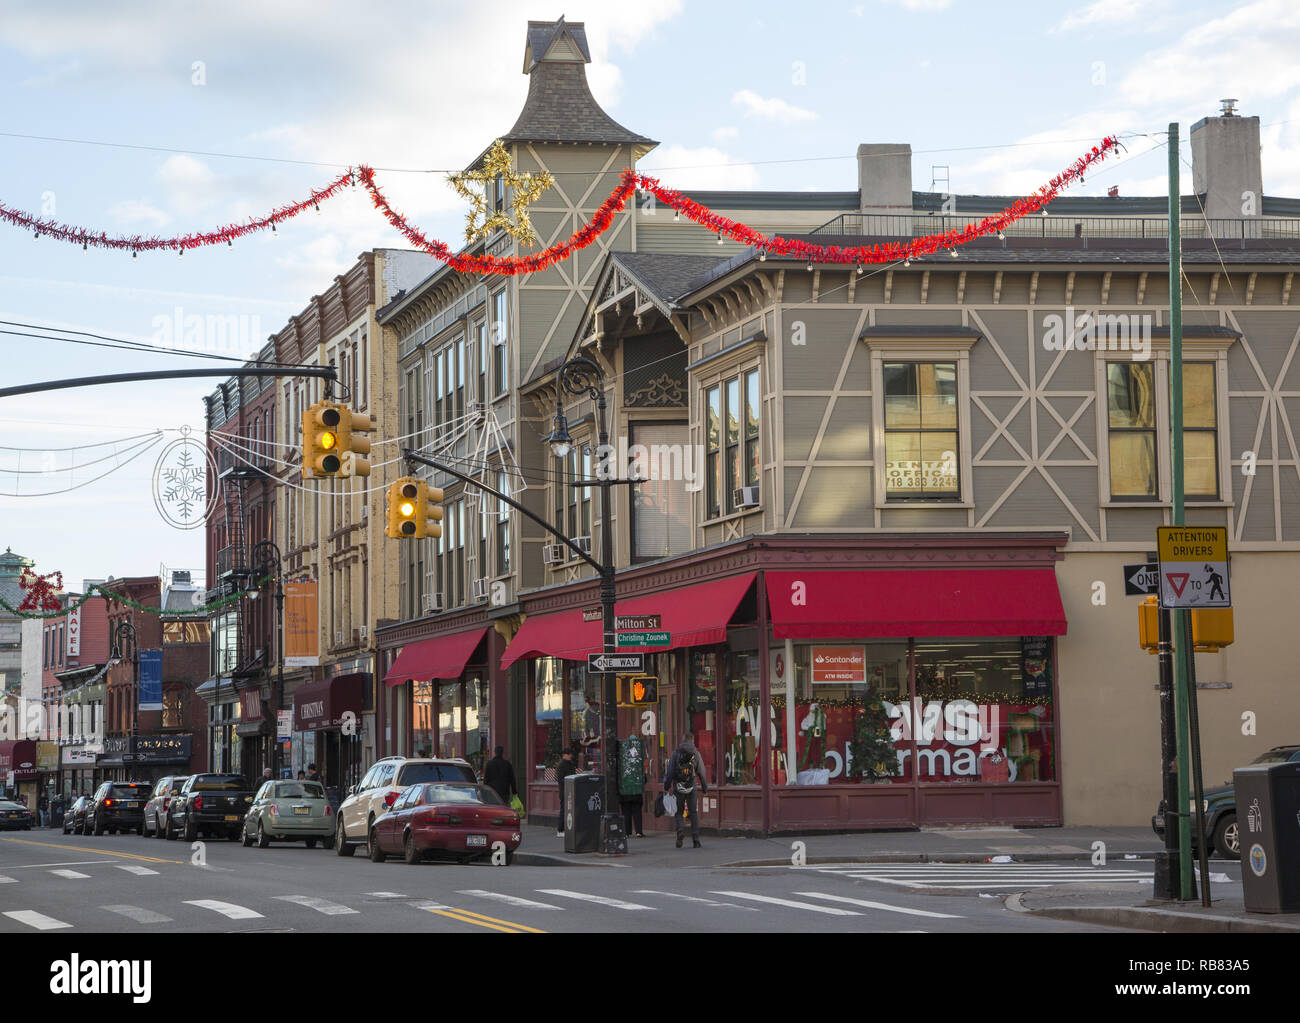 Manhattan Avenue during the Christmas season in Greenpoint Brooklyn, New York City. - Stock Image